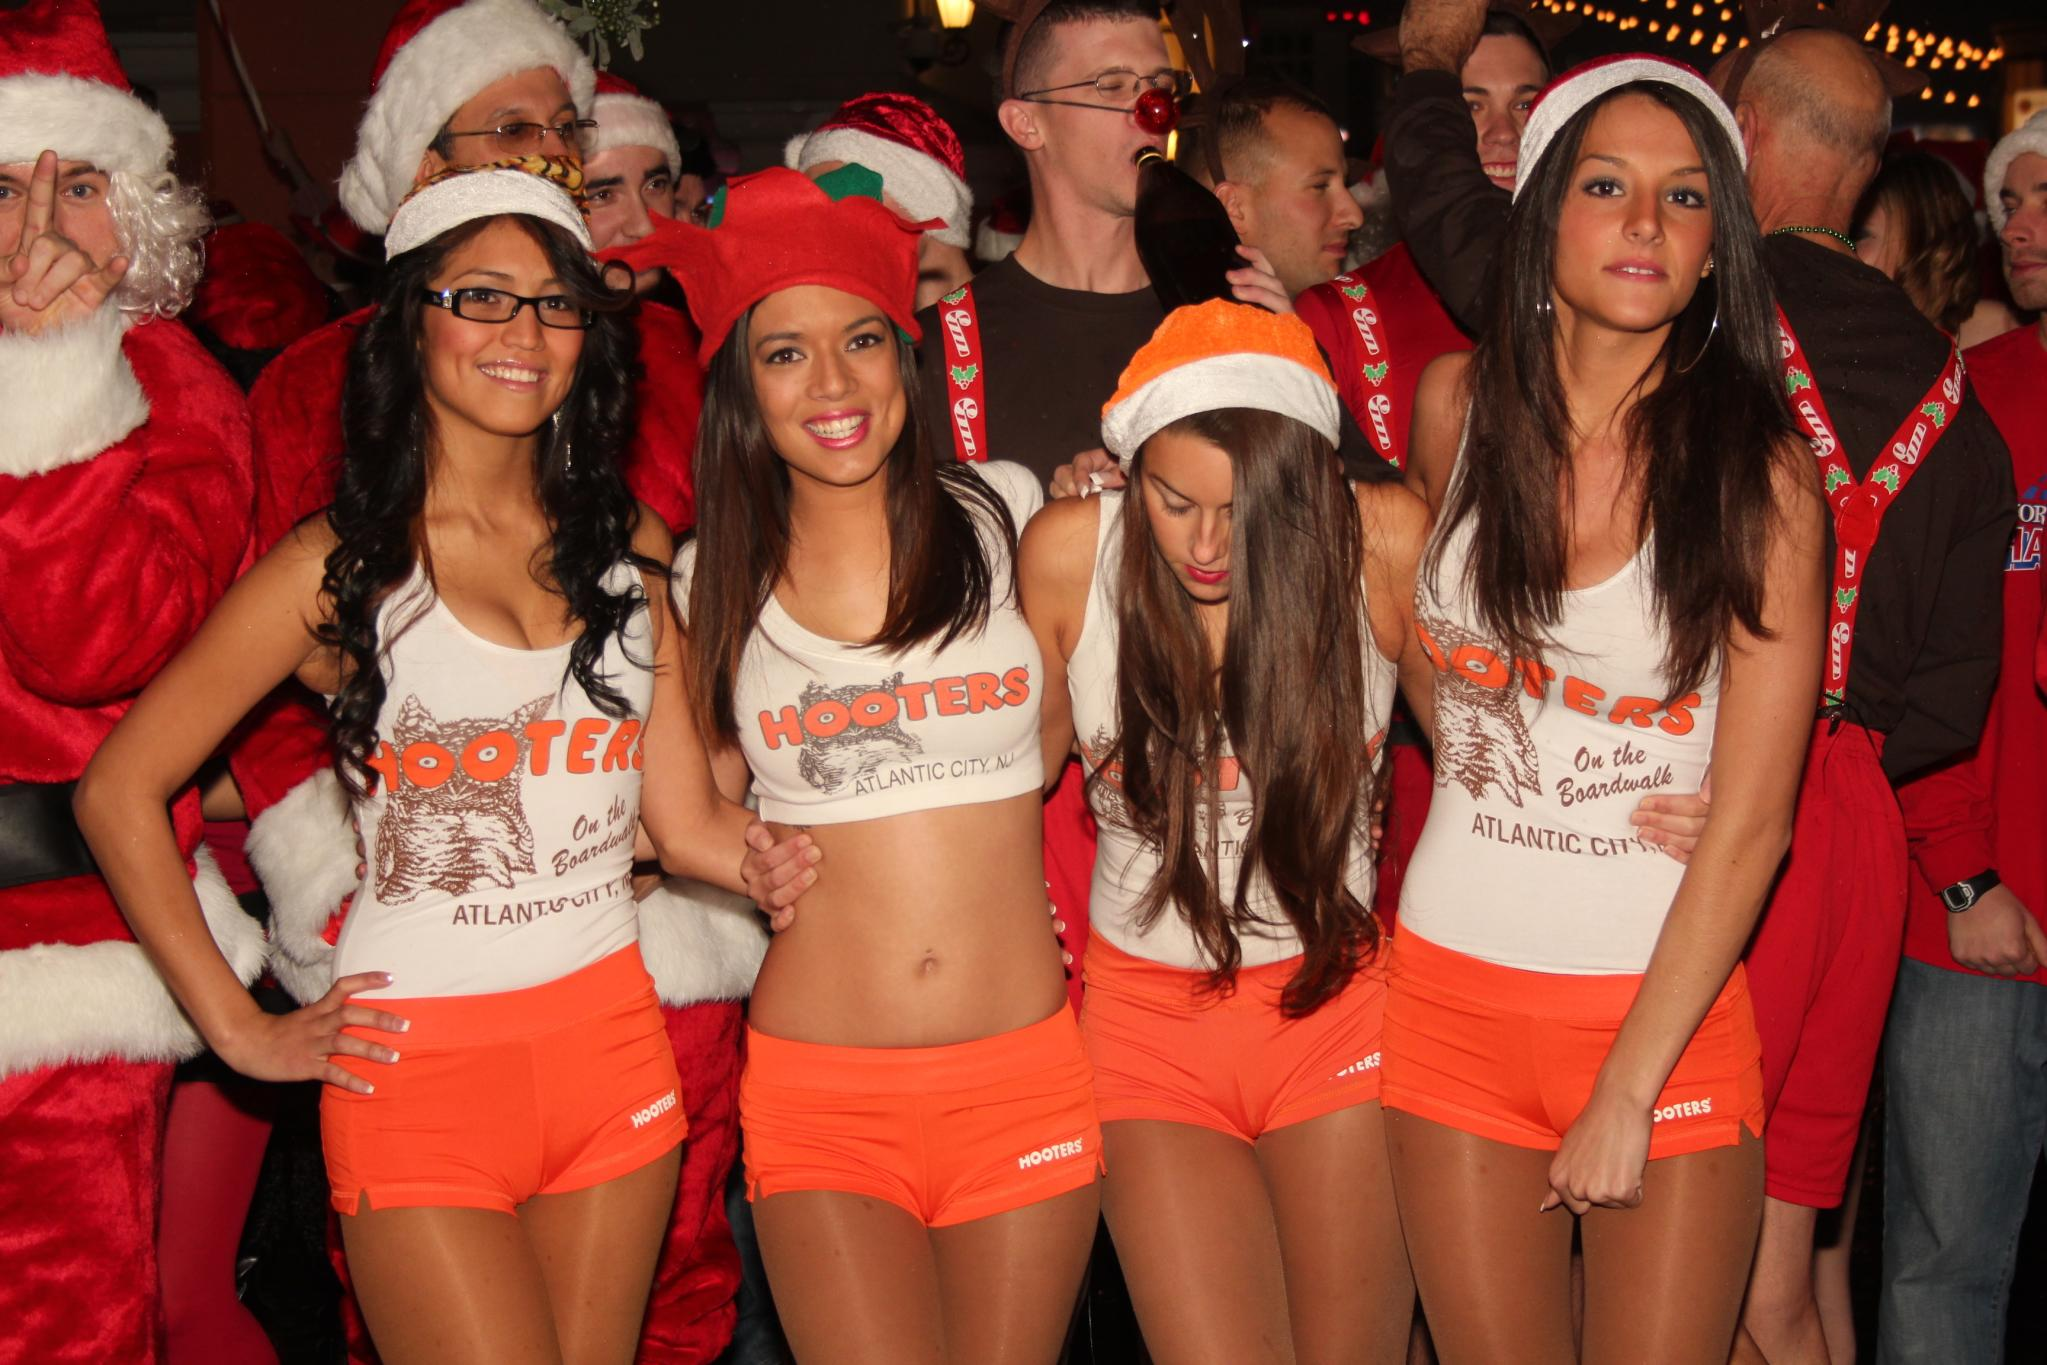 a Hooters photo for comparison